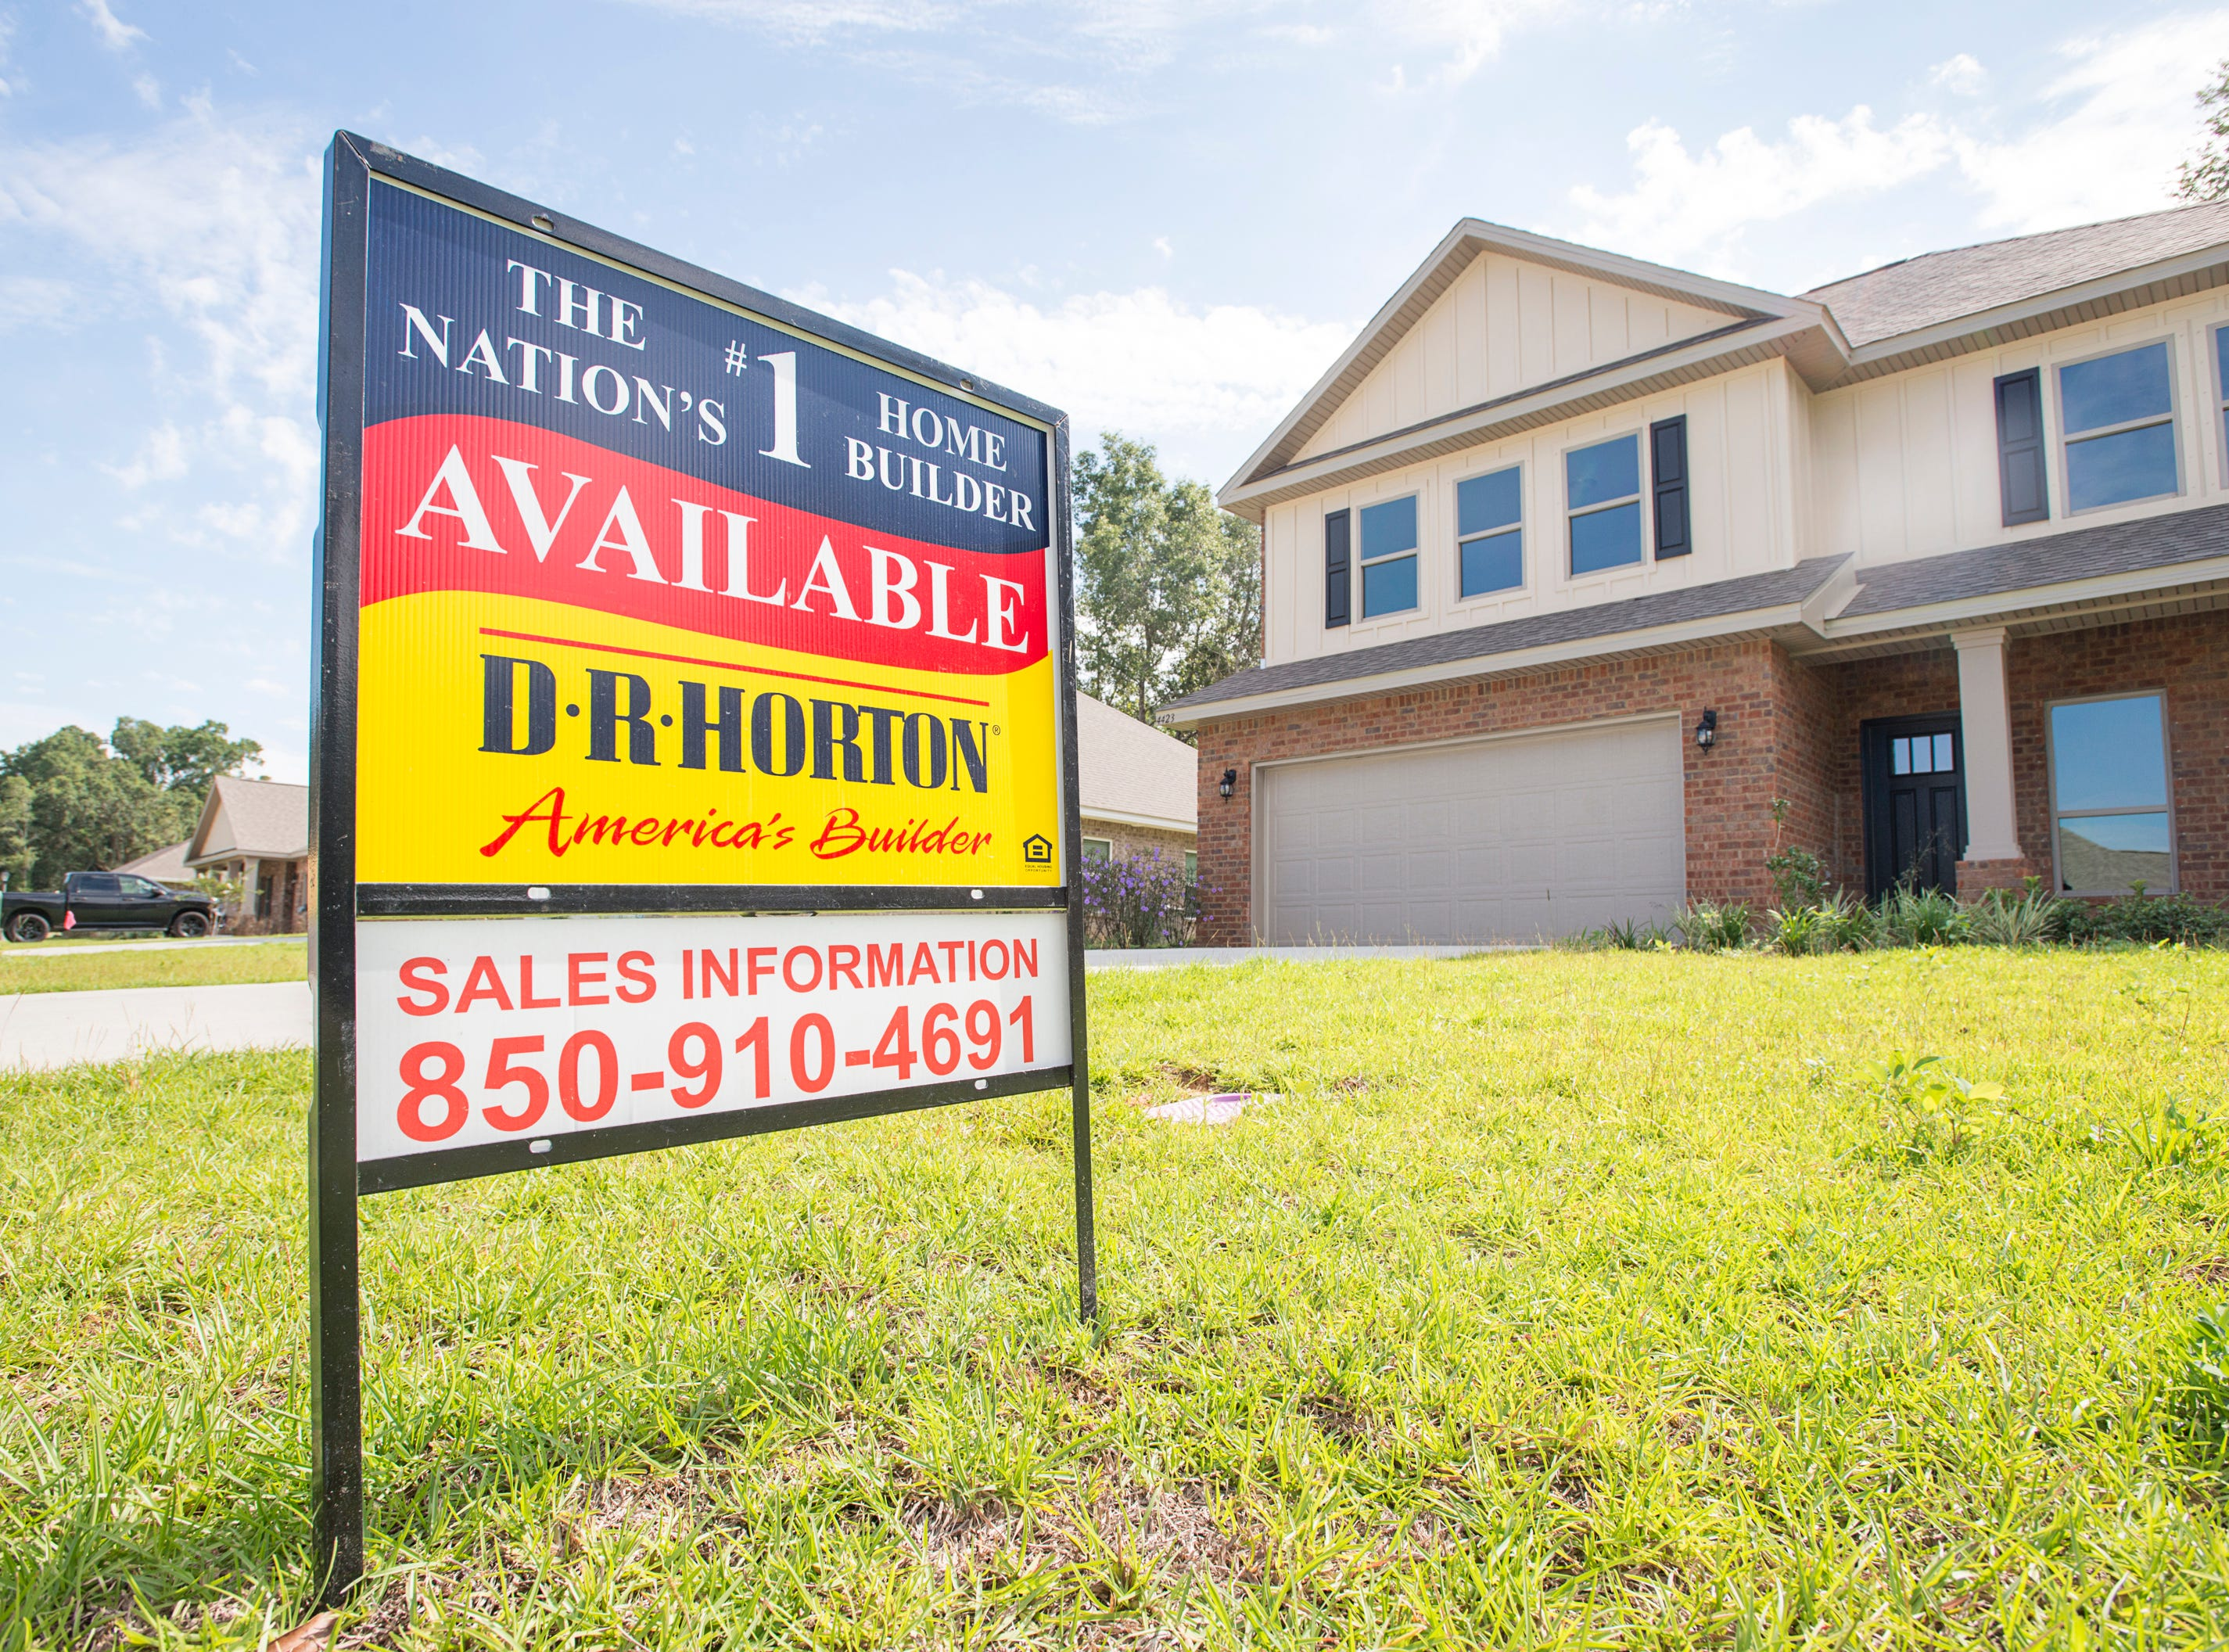 Houses for sale in the new subdivision of Heritage Estates in Pace's District 1 on Tuesday, August 7, 2018.